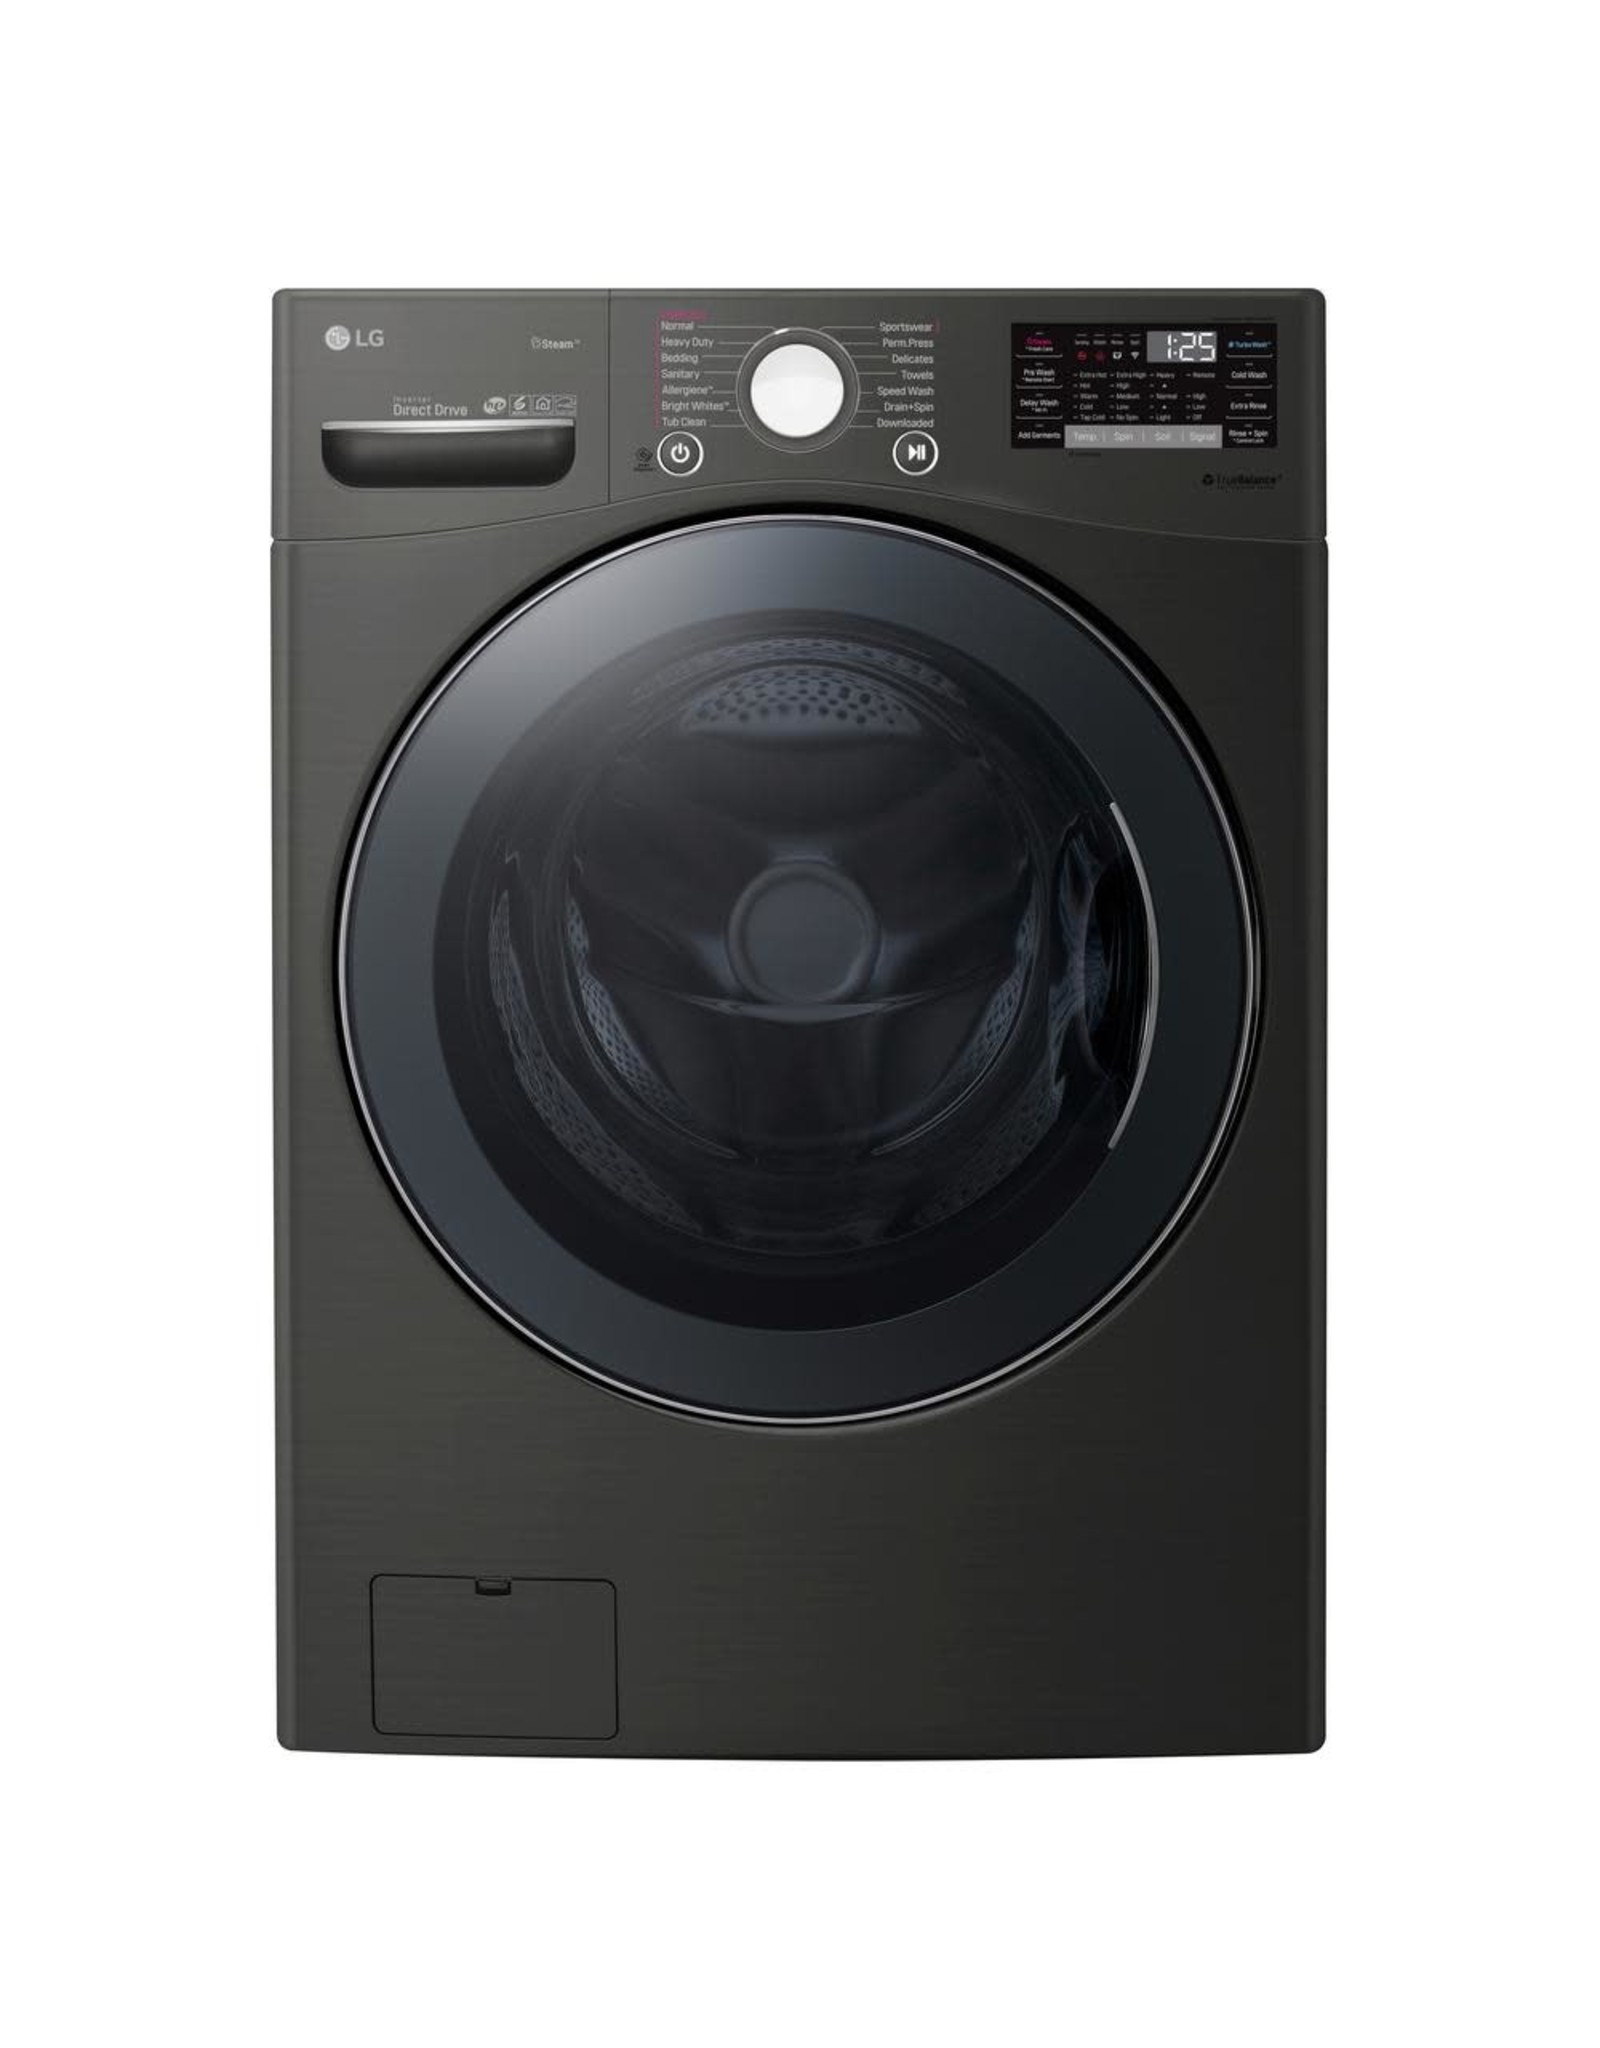 LG Electronics WM3900HBA   4.5 cu. ft HE Ultra Large Smart Front Load Washer with TurboWash360, Steam & Wi-Fi in Black Steel, ENERGY STAR